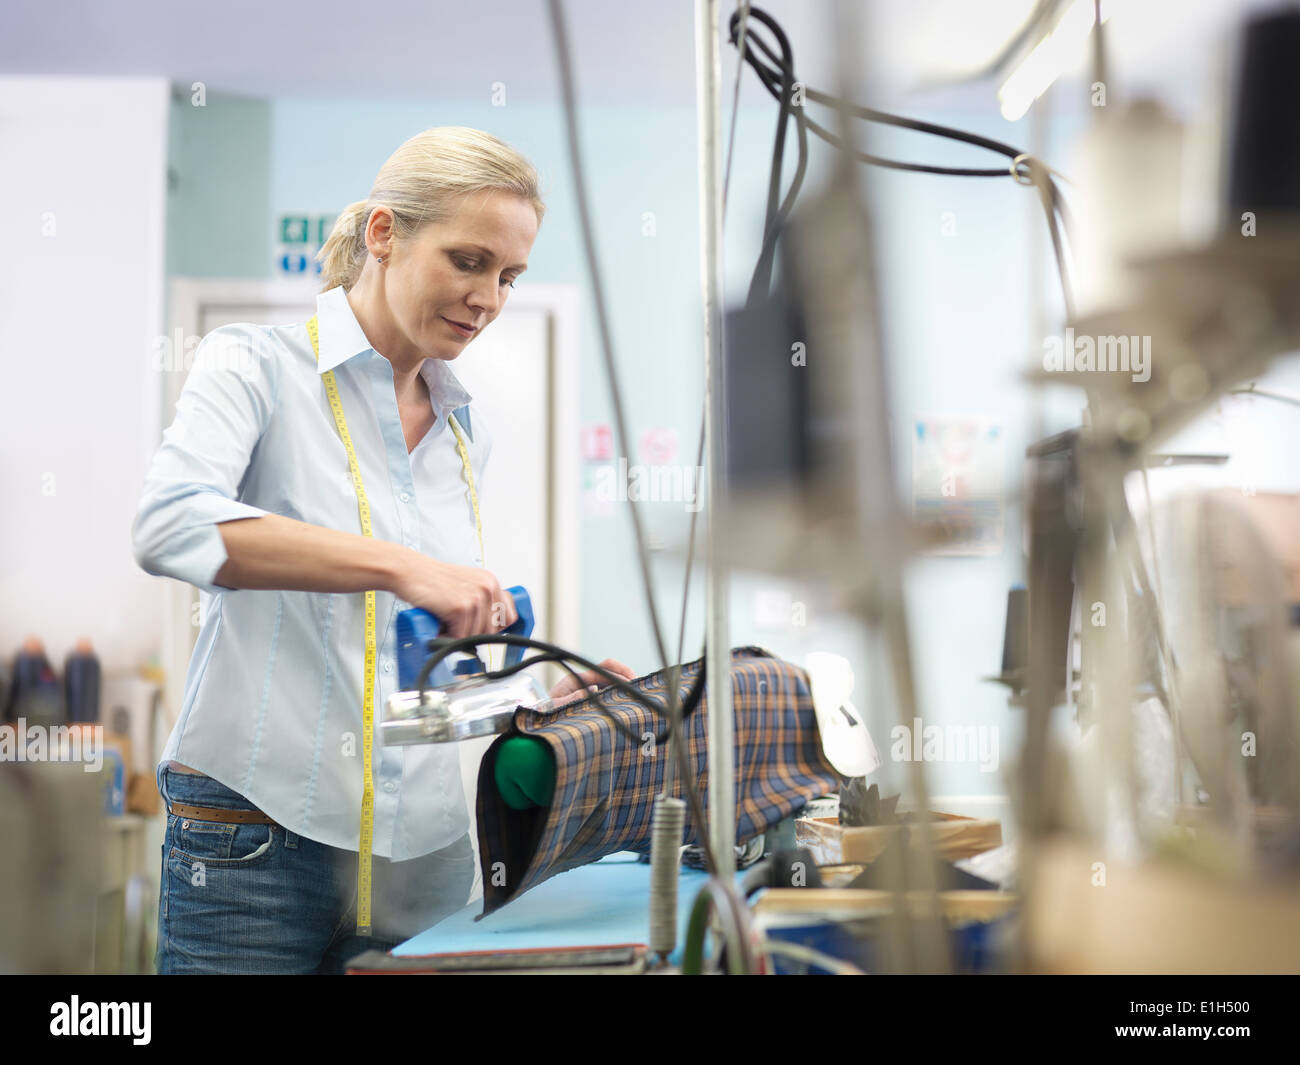 Worker ironing garment in clothing factory - Stock Image